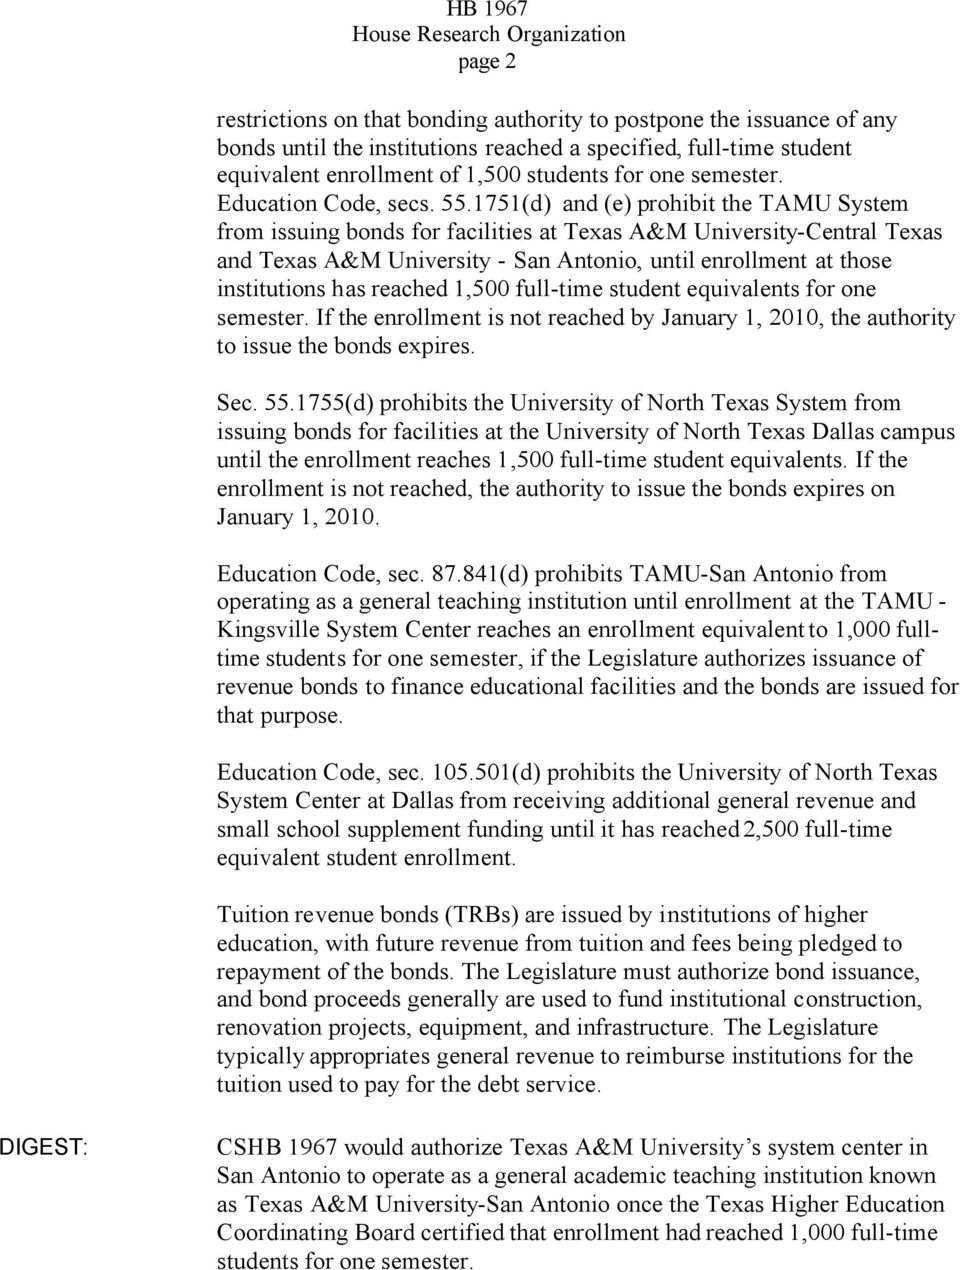 1751(d) and (e) prohibit the TAMU System from issuing bonds for facilities at Texas A&M University-Central Texas and Texas A&M University - San Antonio, until enrollment at those institutions has